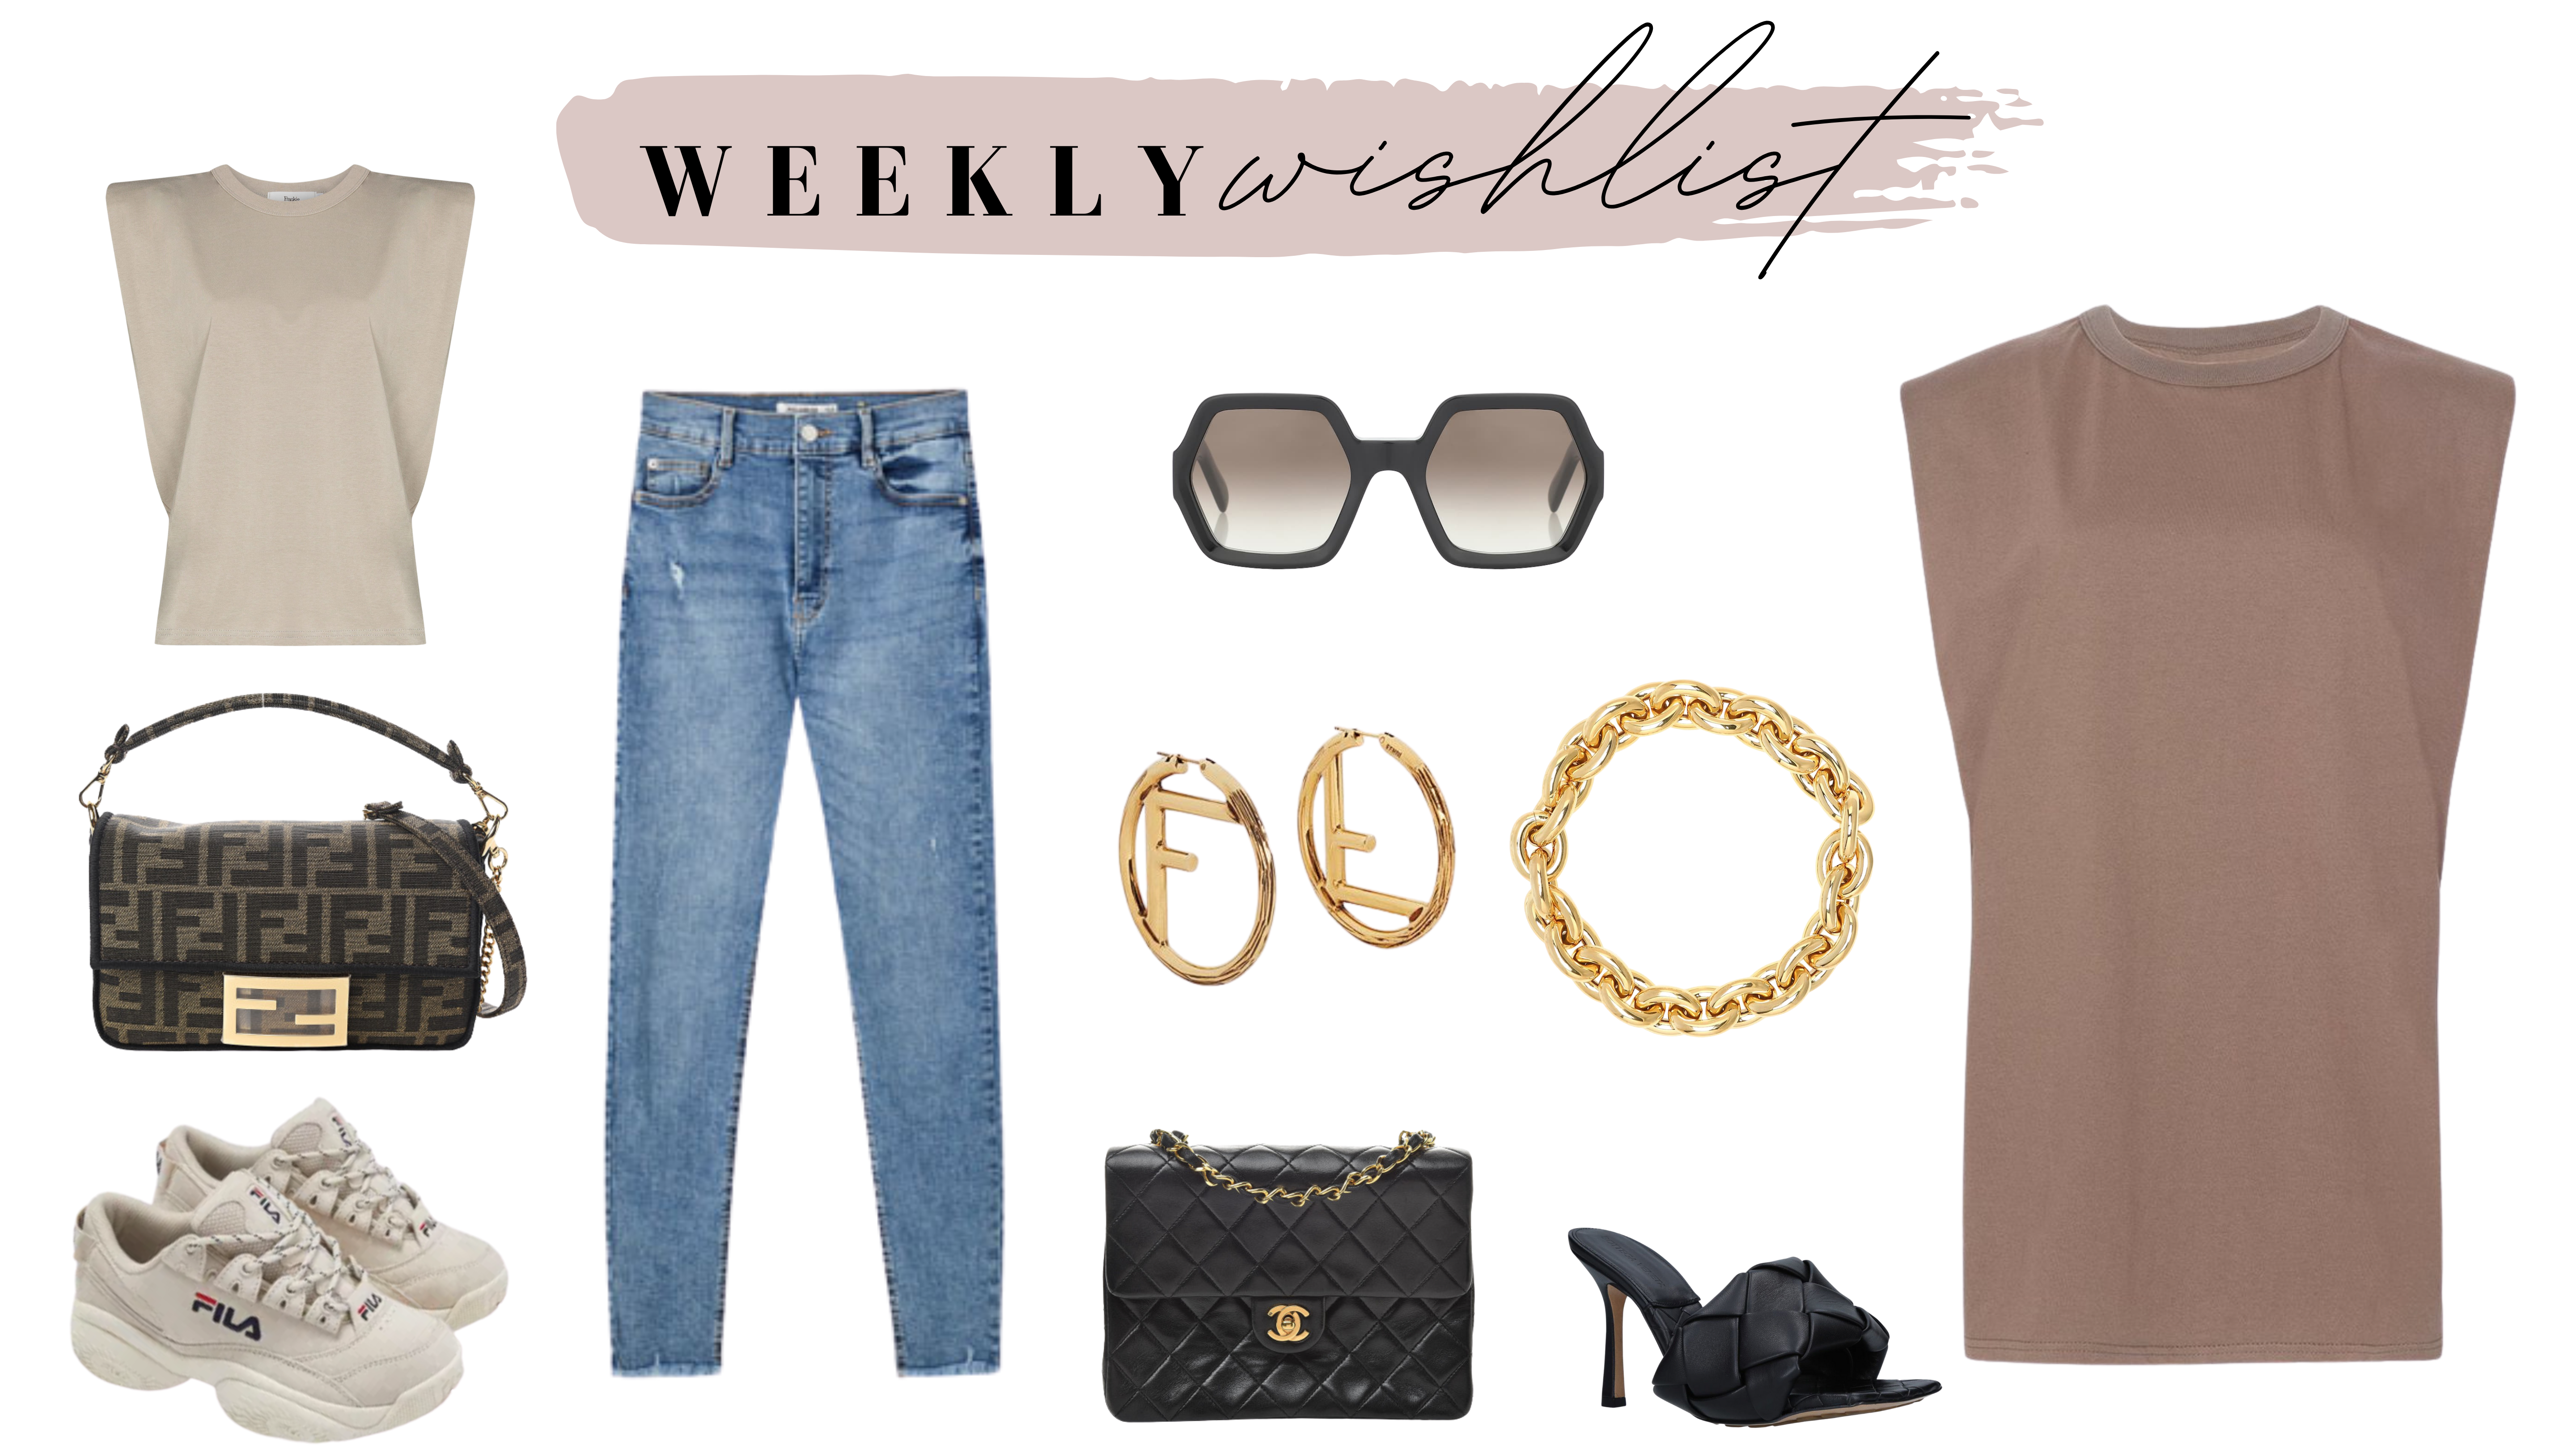 WEEKLY WISHLIST #1